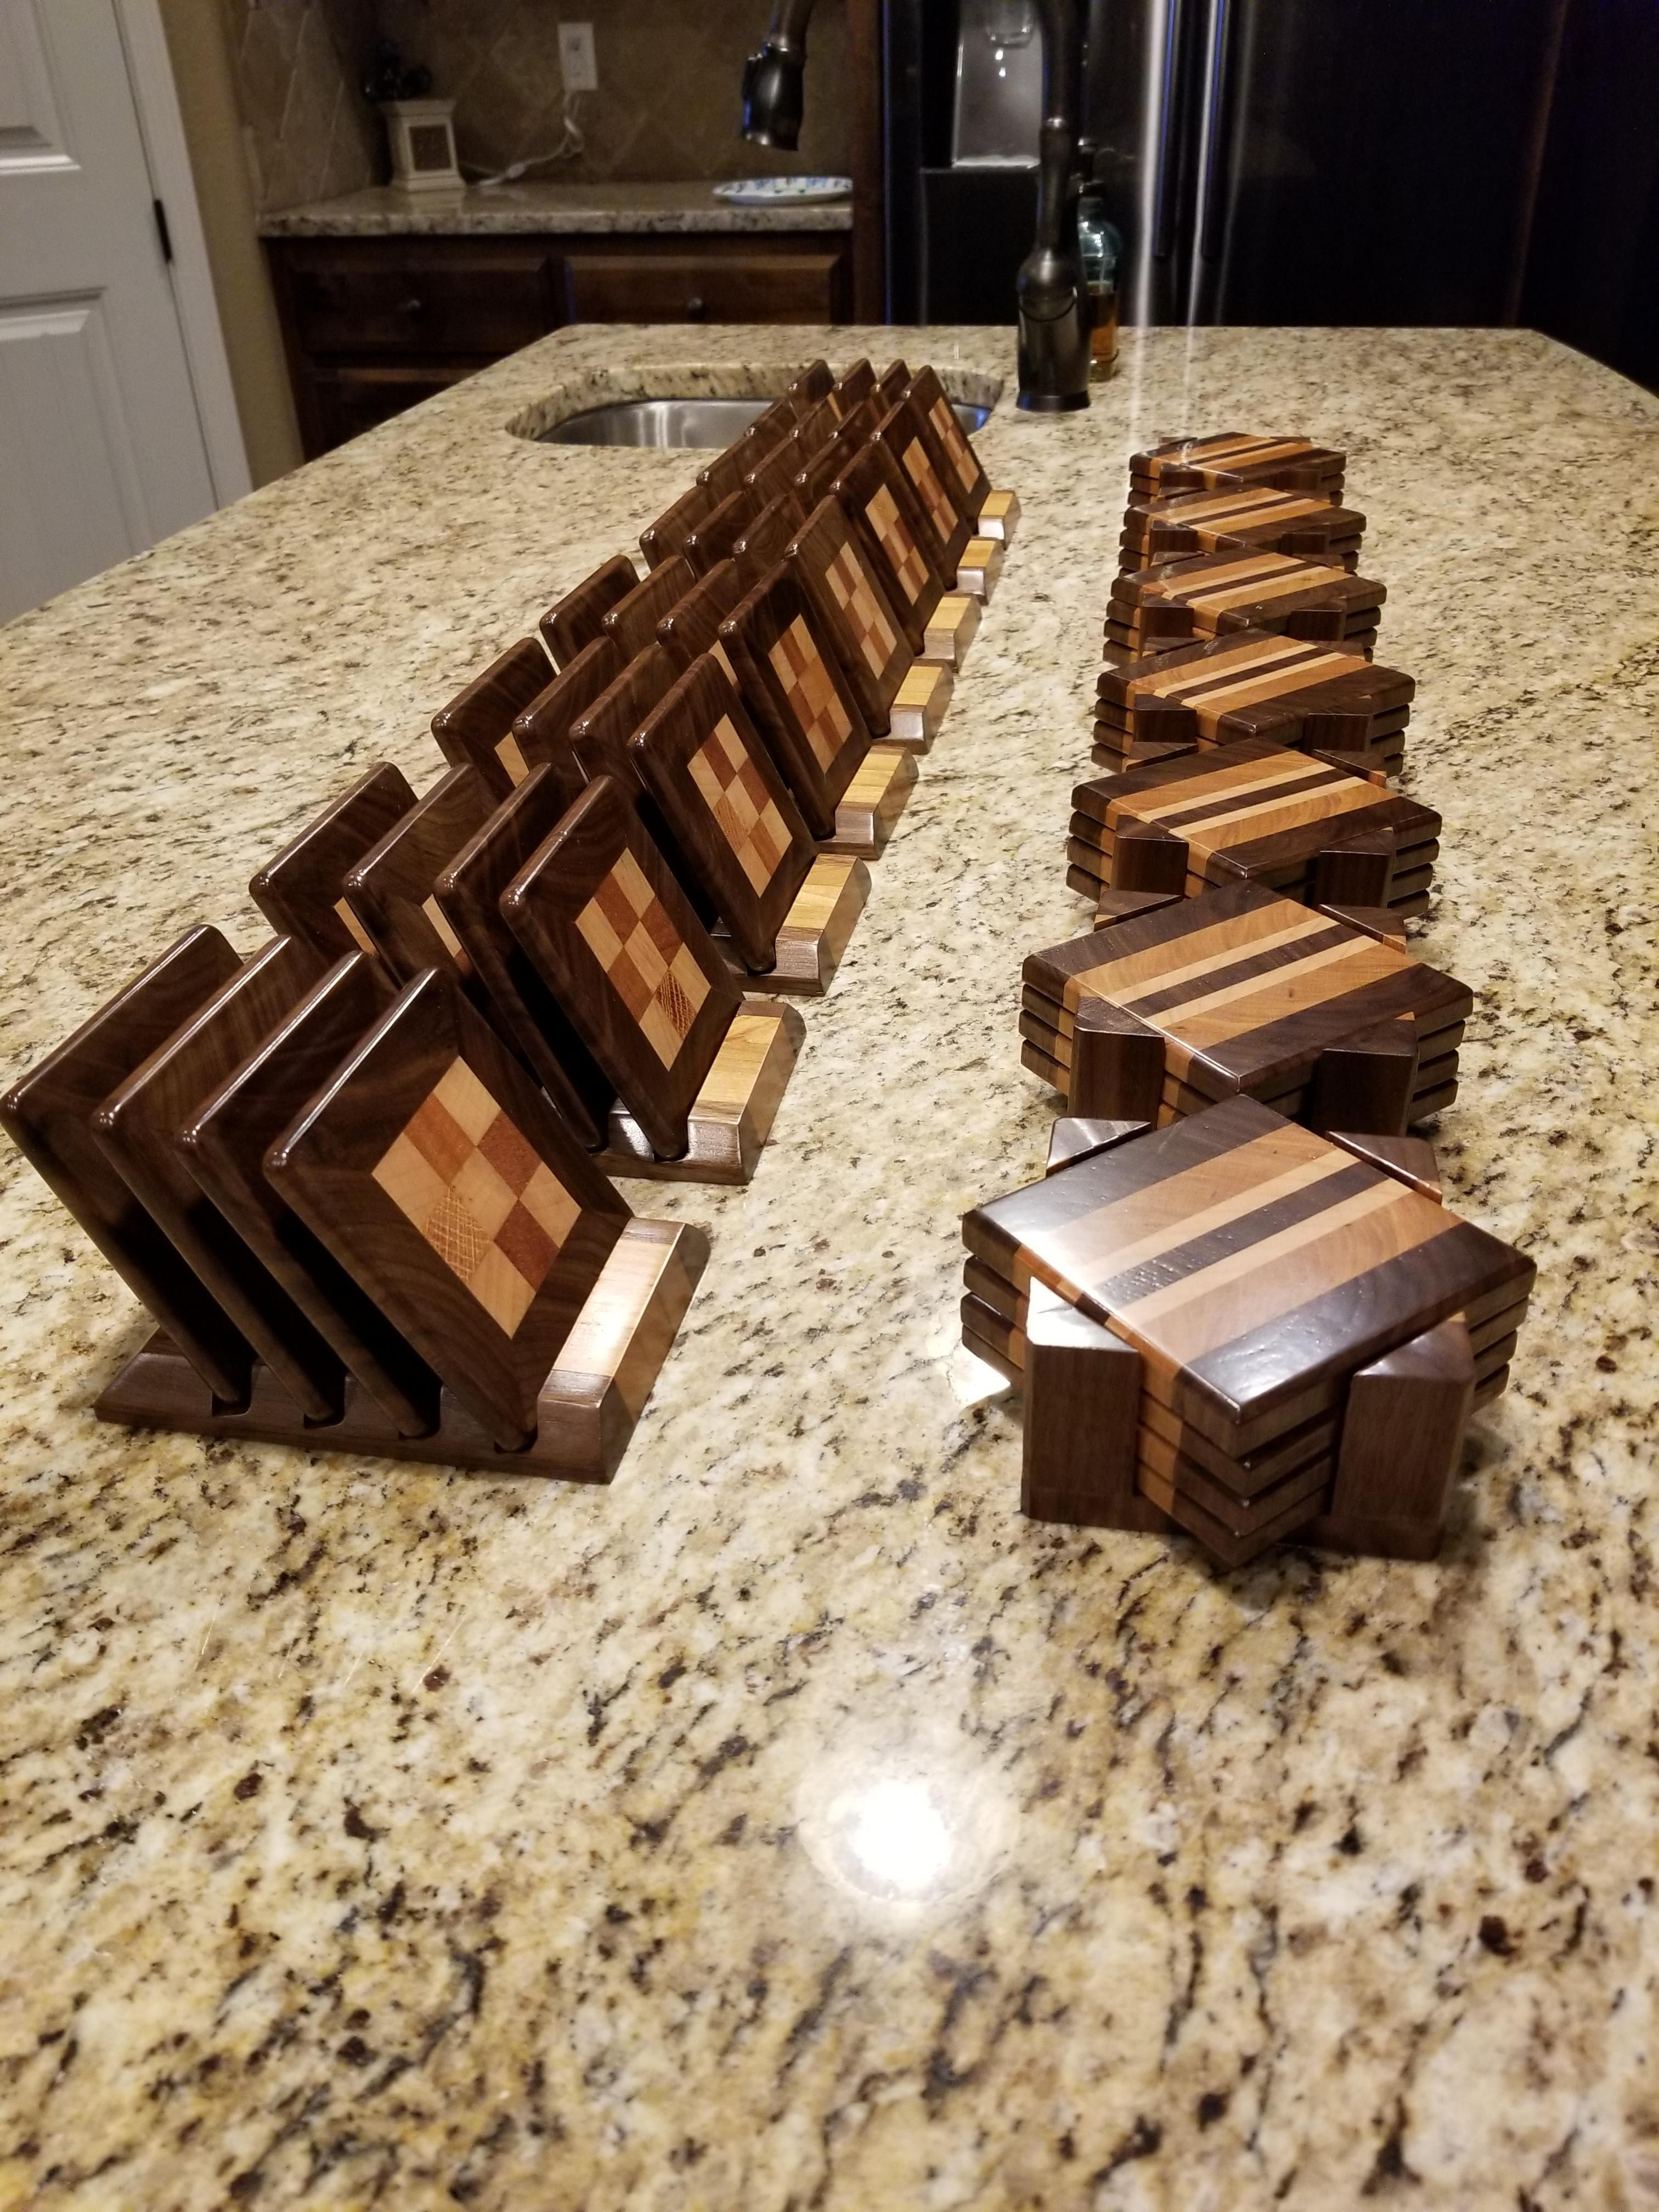 Pin by brandon o'connell on builds Small wood projects